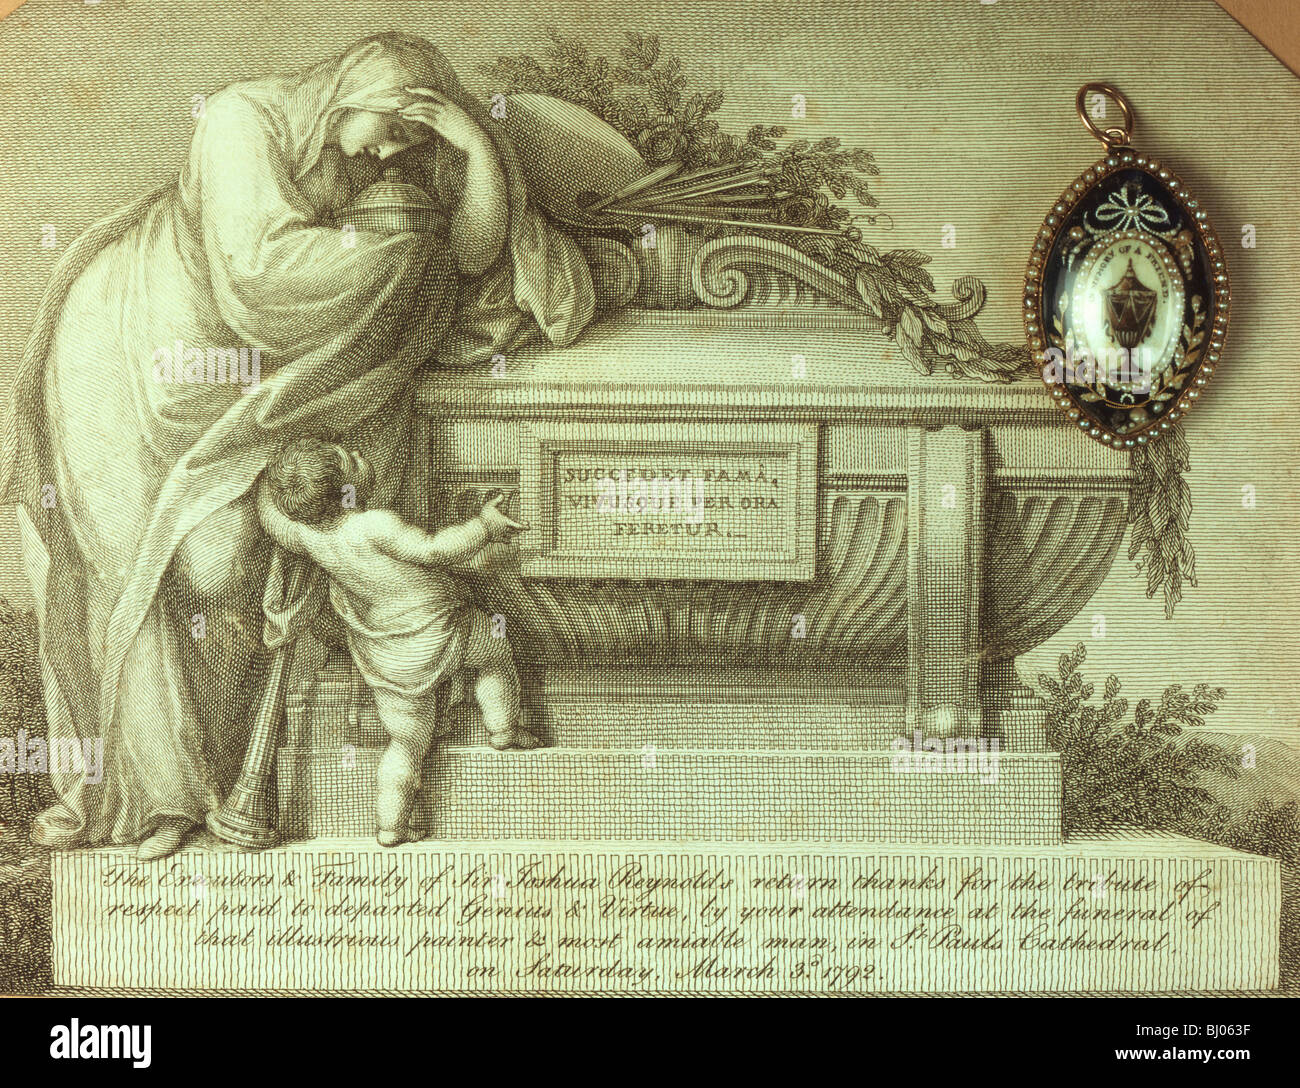 Mourning card and memento of Sir Joshua Reynolds, 1792. - Stock Image